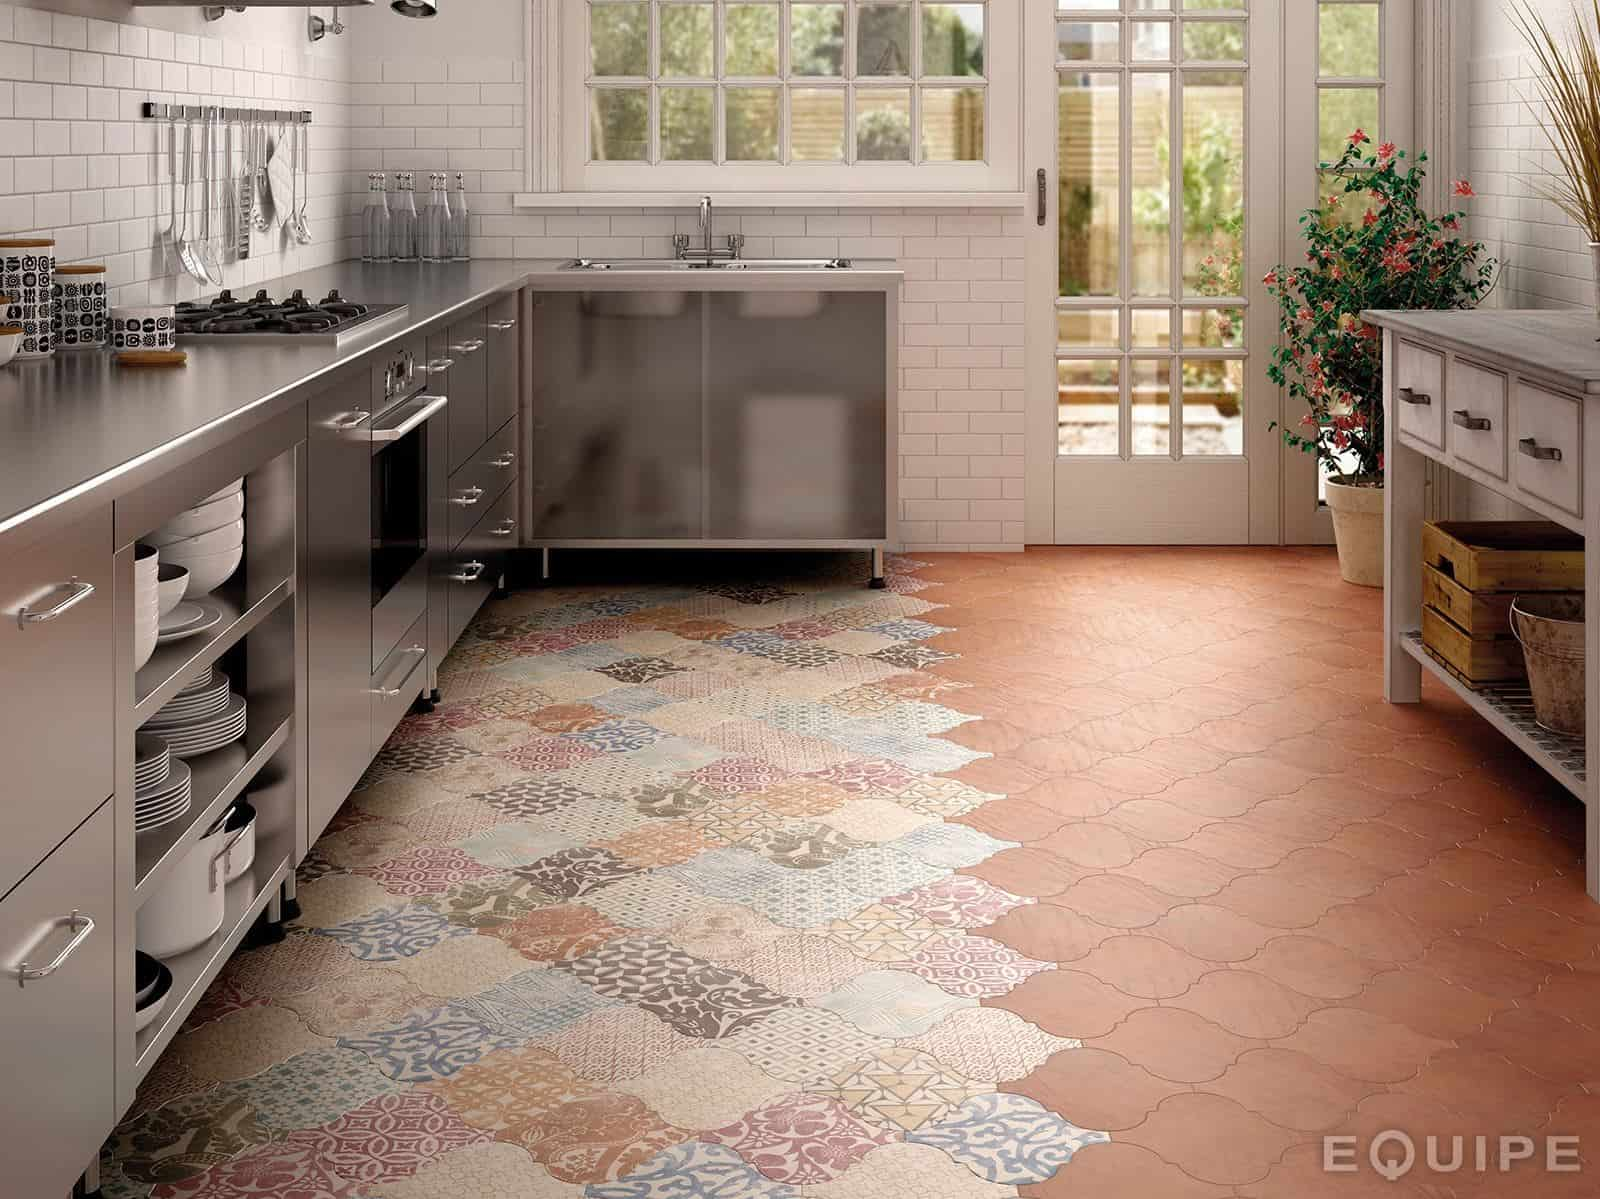 21 arabesque tile ideas for floor wall and backsplash kitchen tiles floor View in gallery arabesque tile kitchen floor patchwork equipe 4